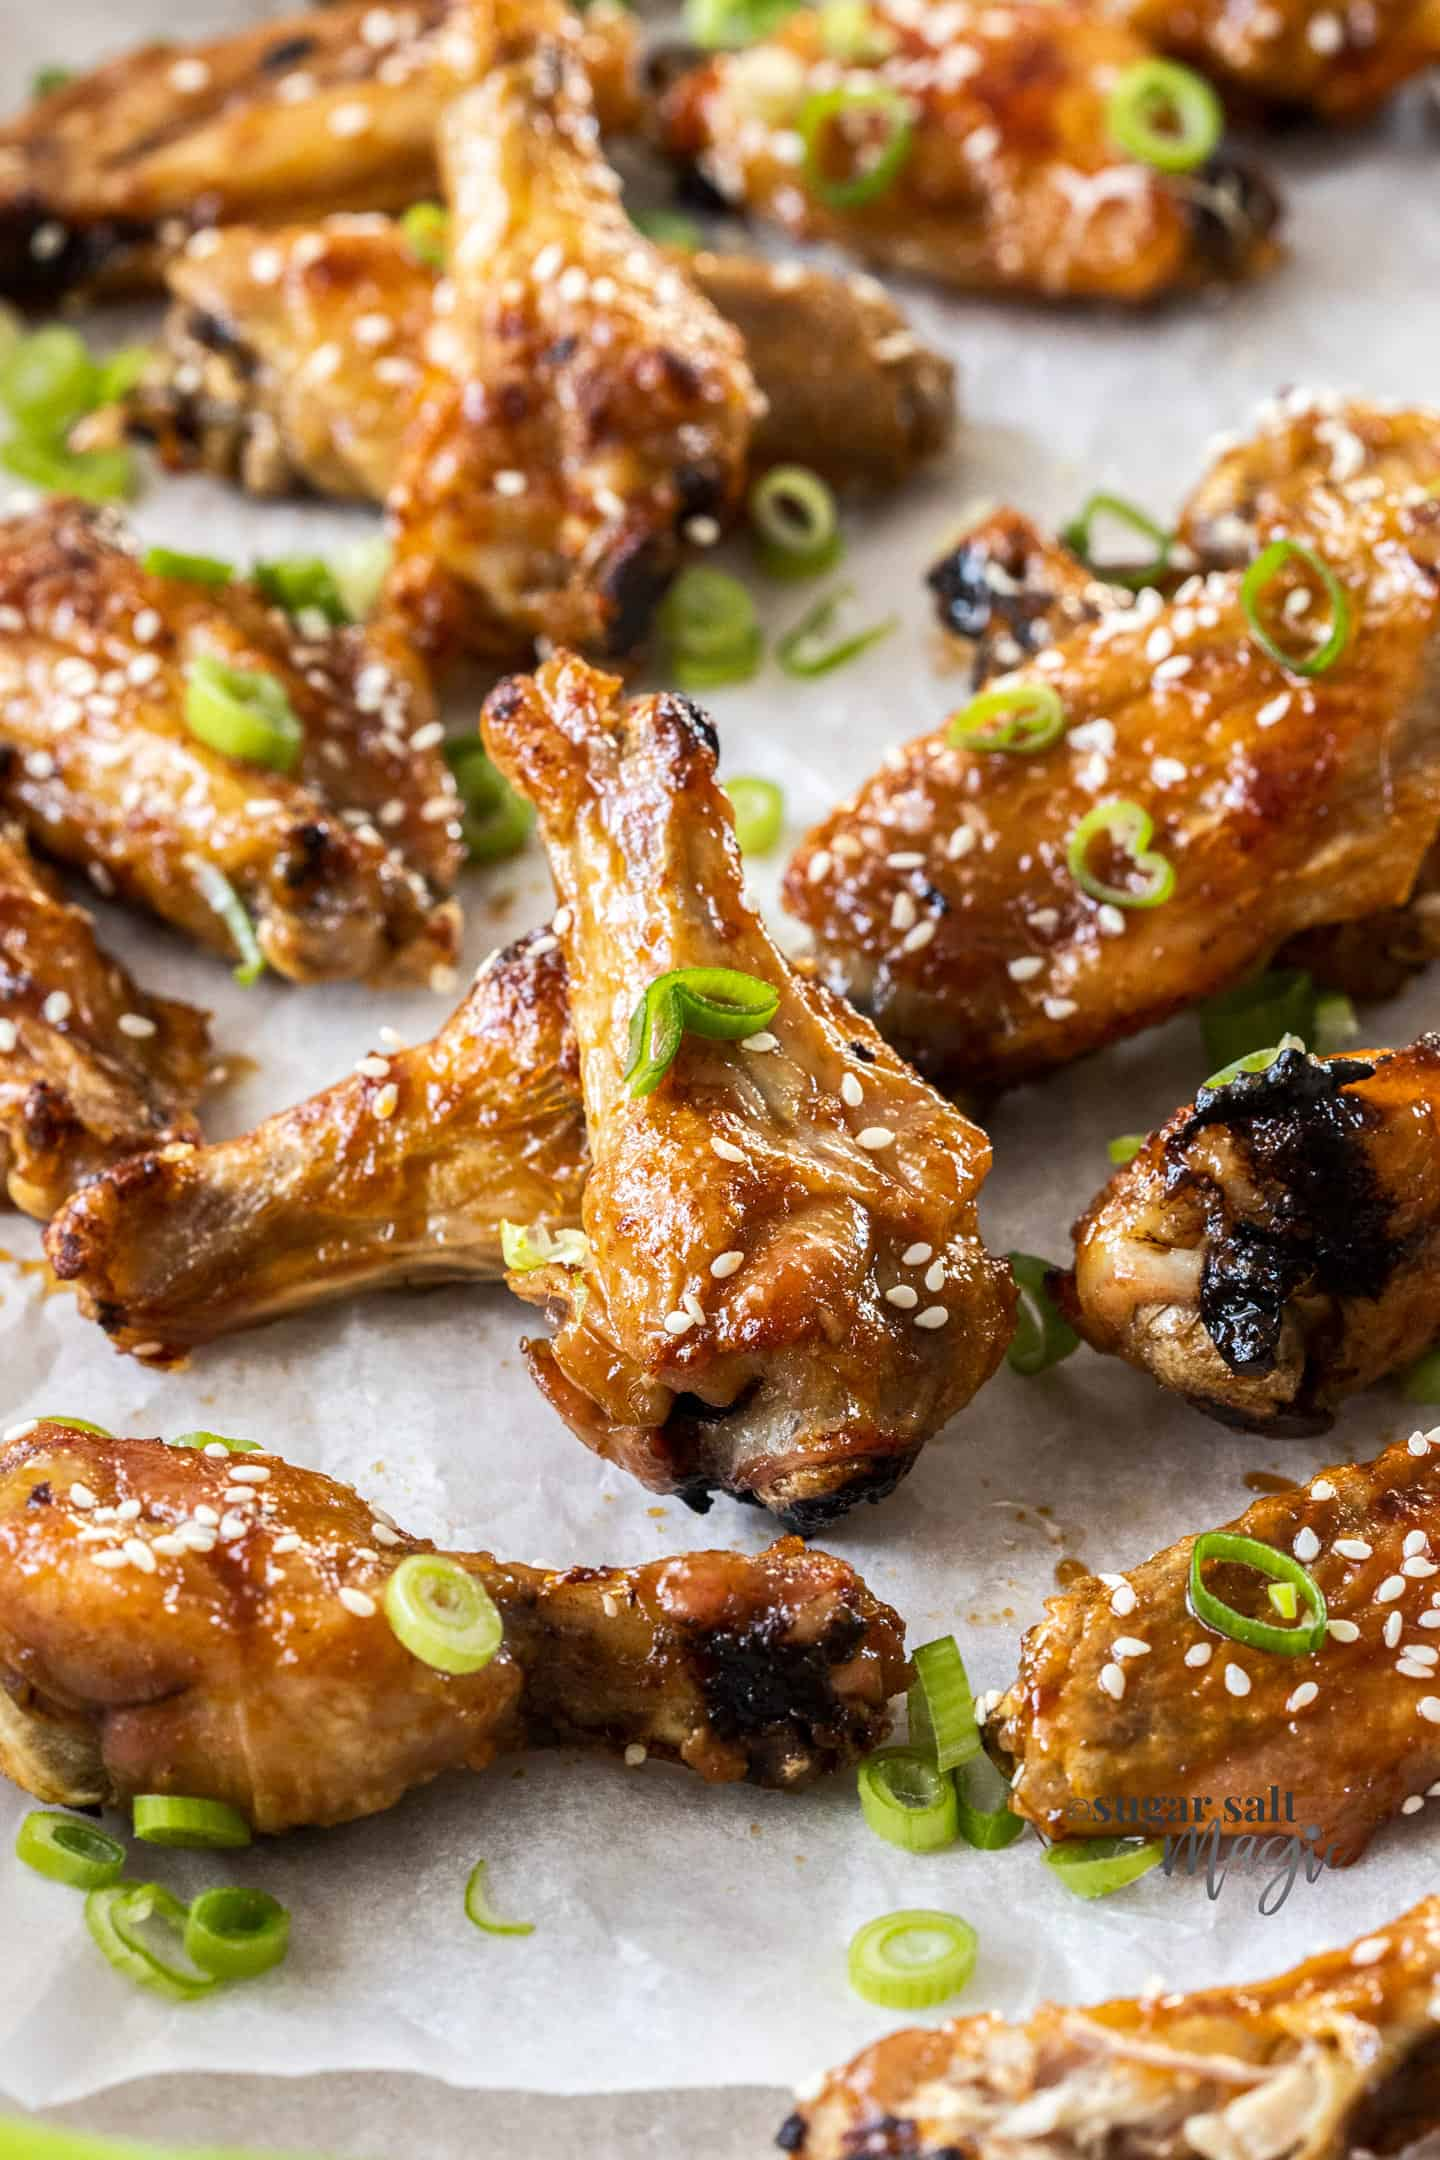 A batch of honey soy coated chicken wings on a sheet of baking paper.